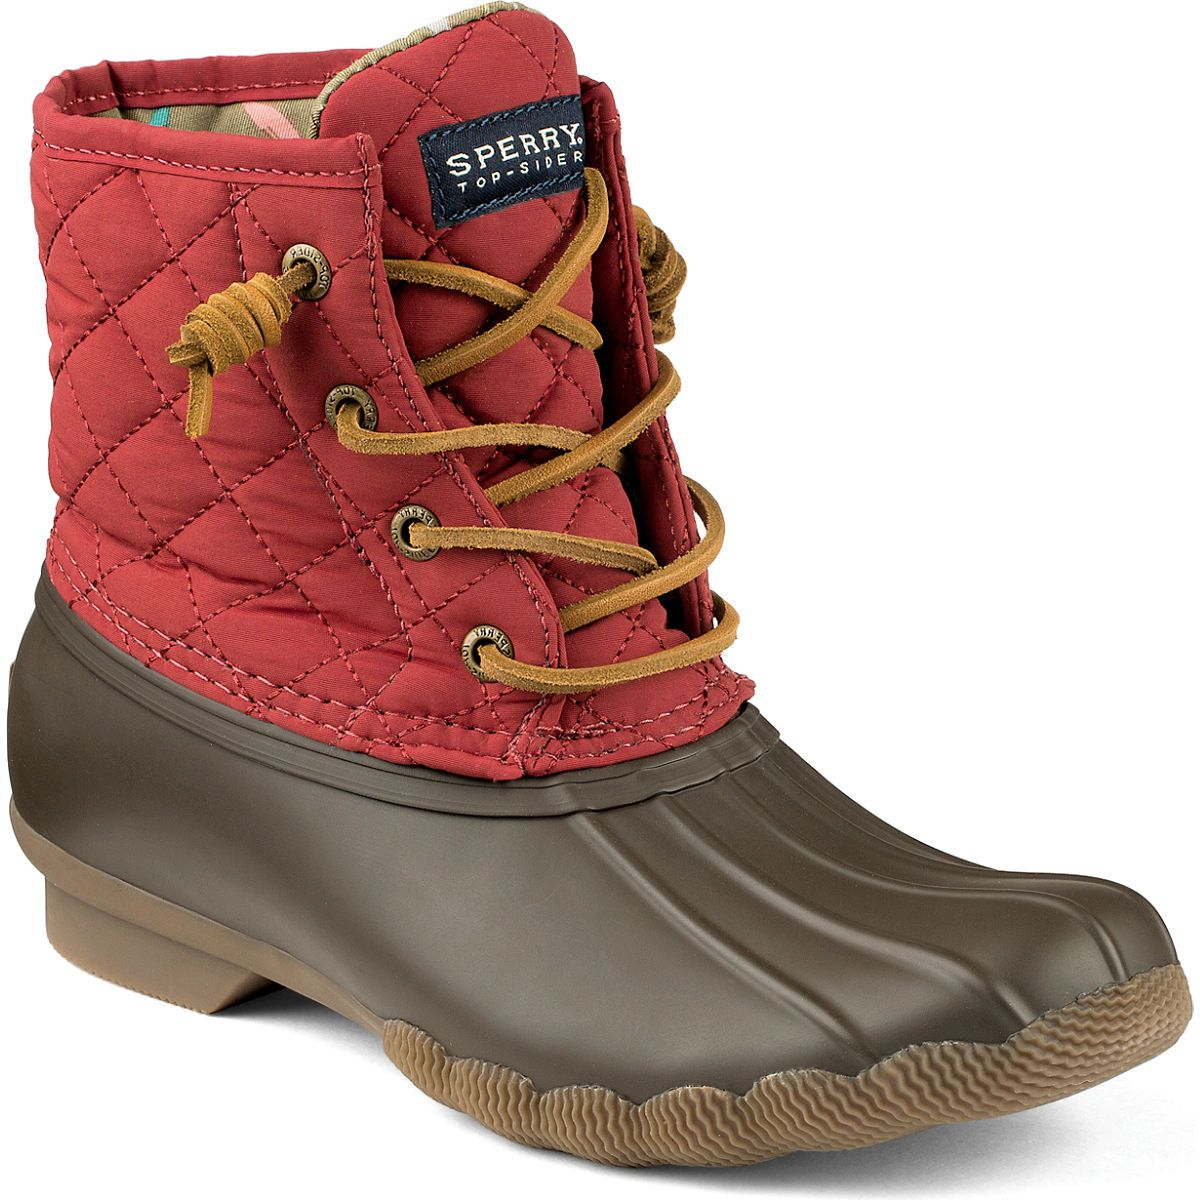 Women's Saltwater Quilted Duck Boot Boots | Sperry Top